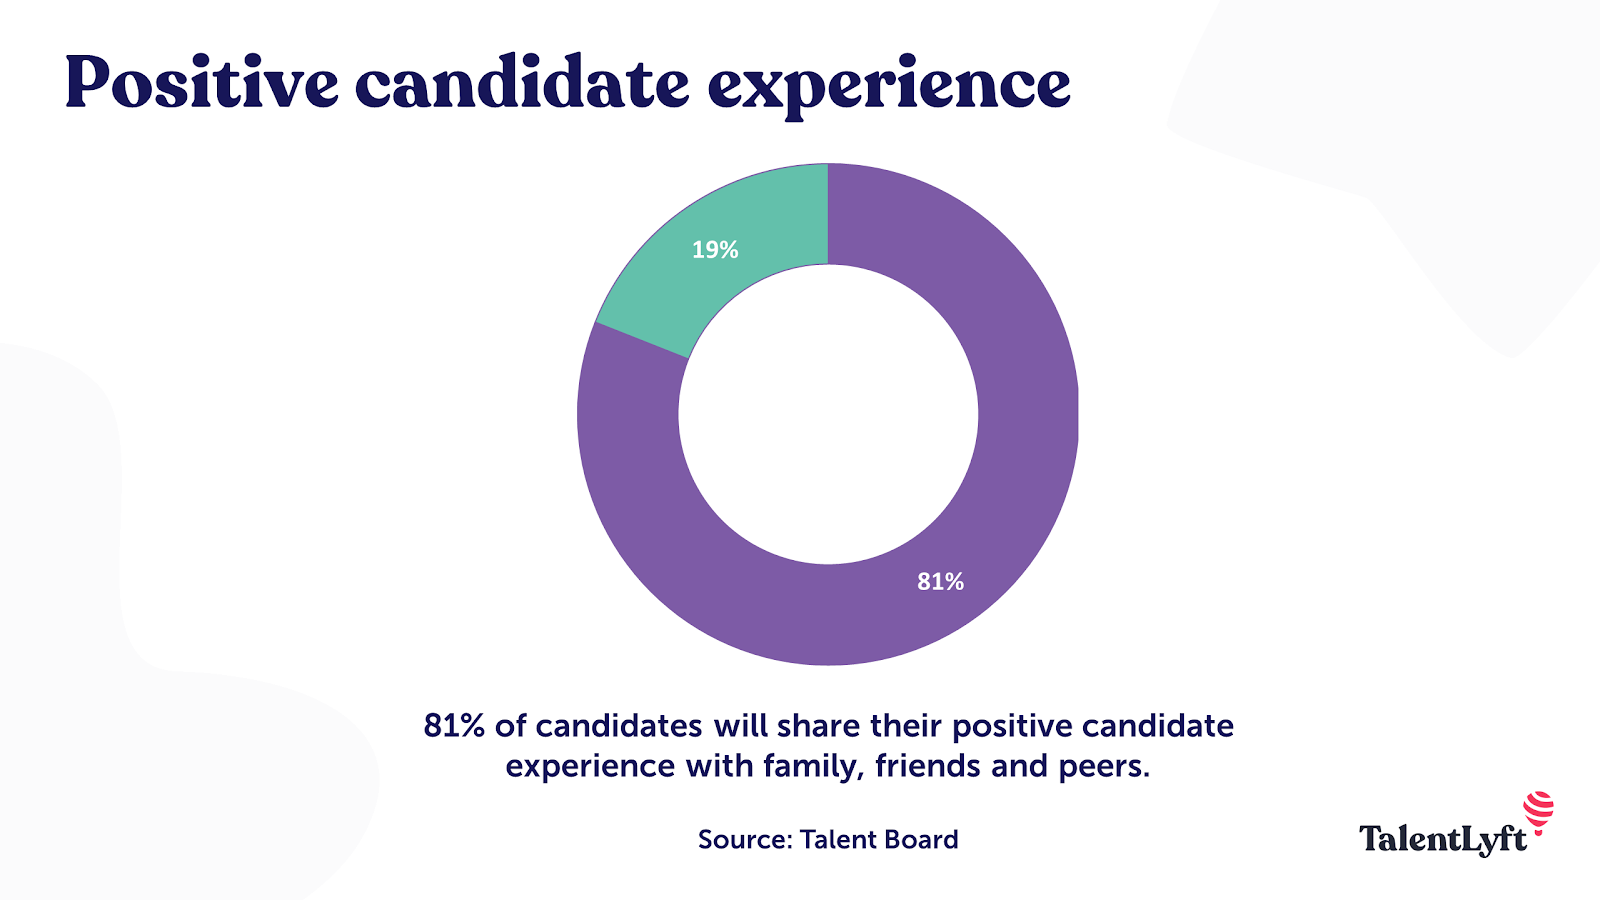 Positive candidate experience even for rejected candidates